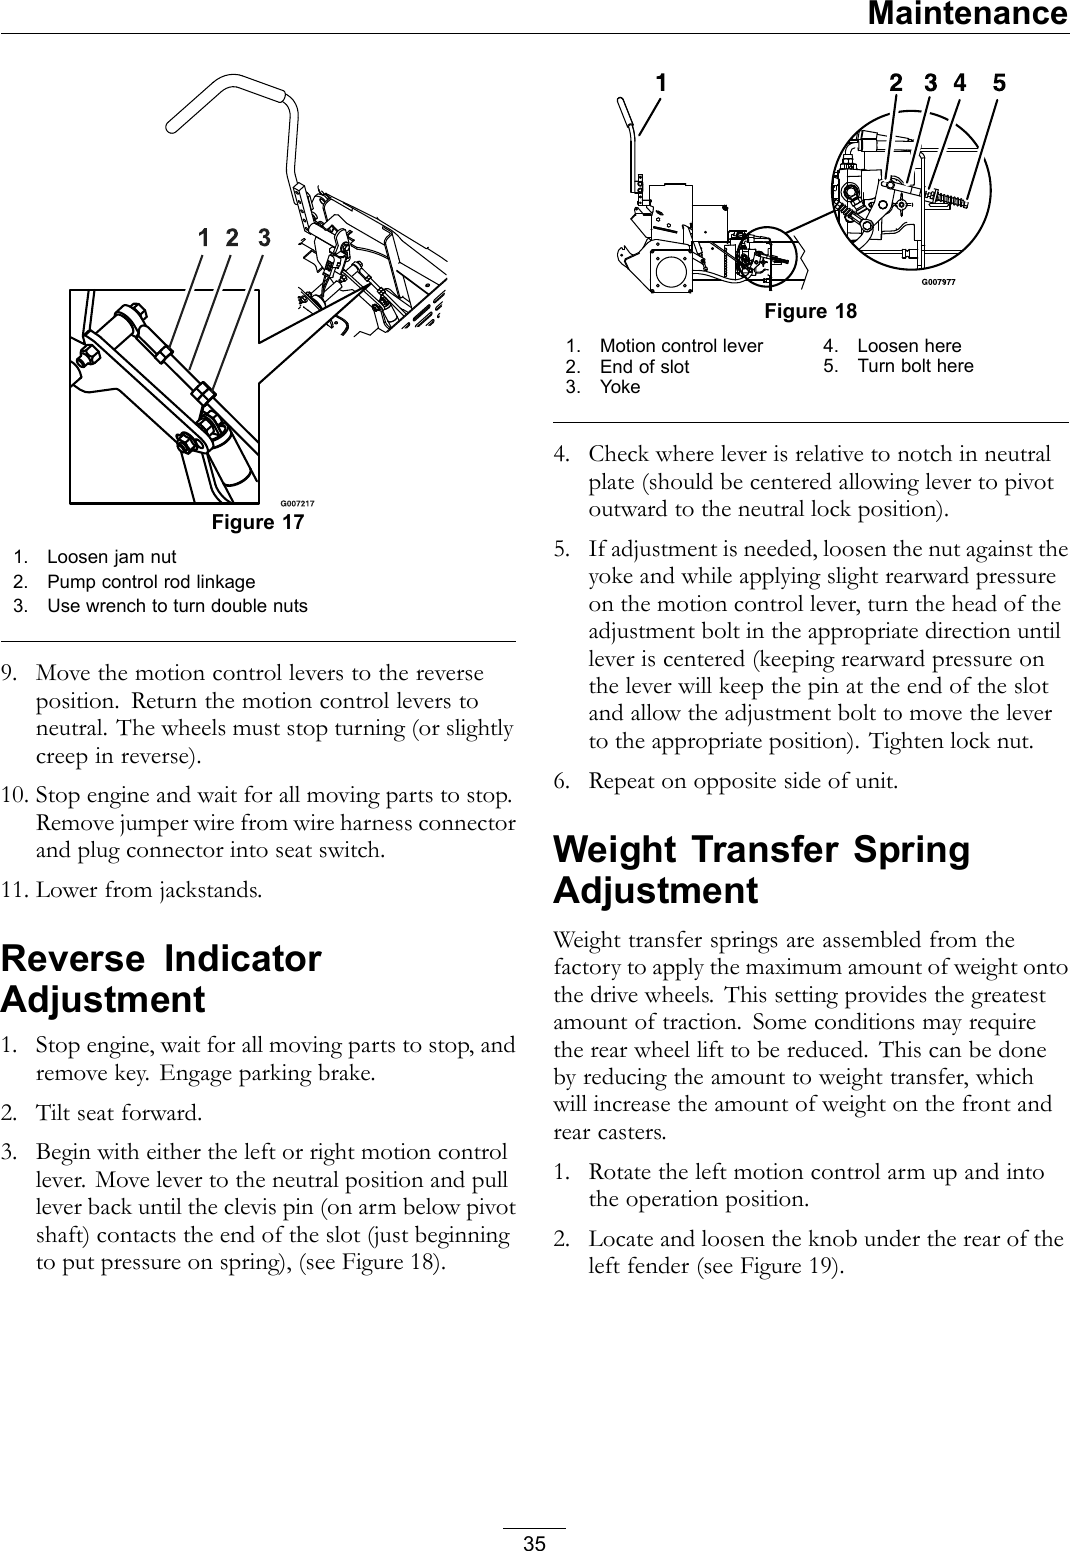 Exmark Frontrunner Diesel Users Manual